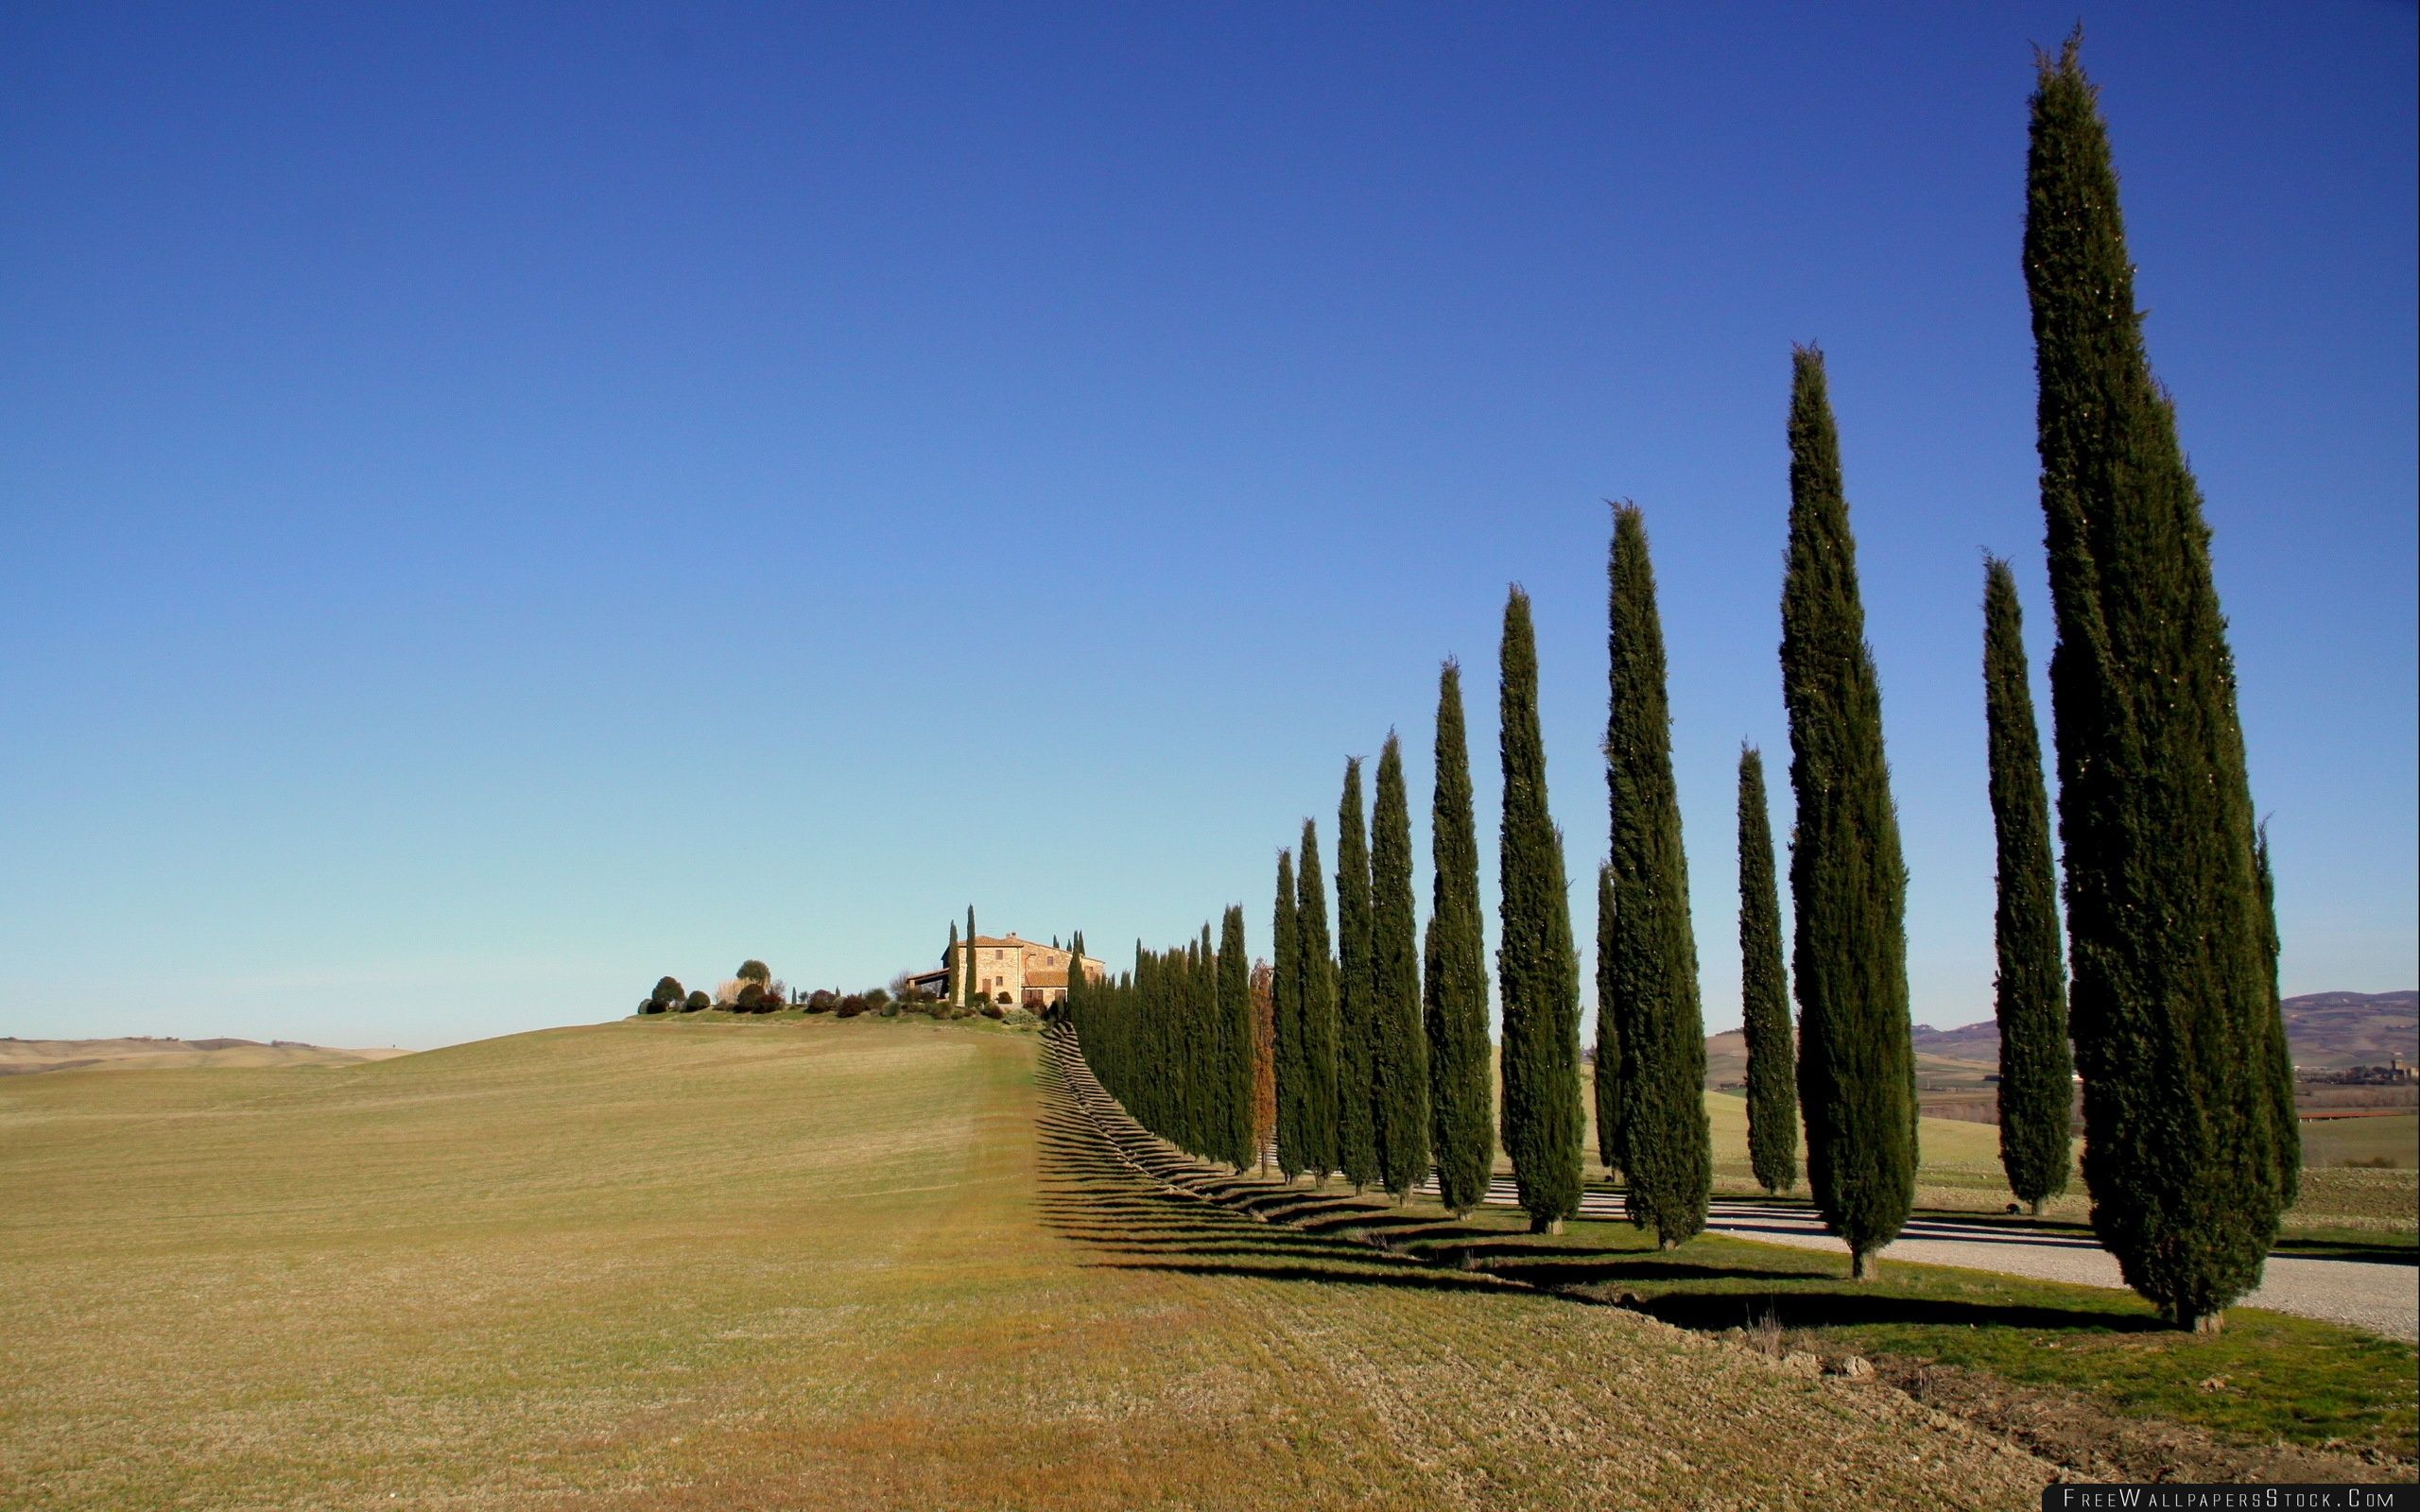 Download Free Wallpaper Tuscany Landscape